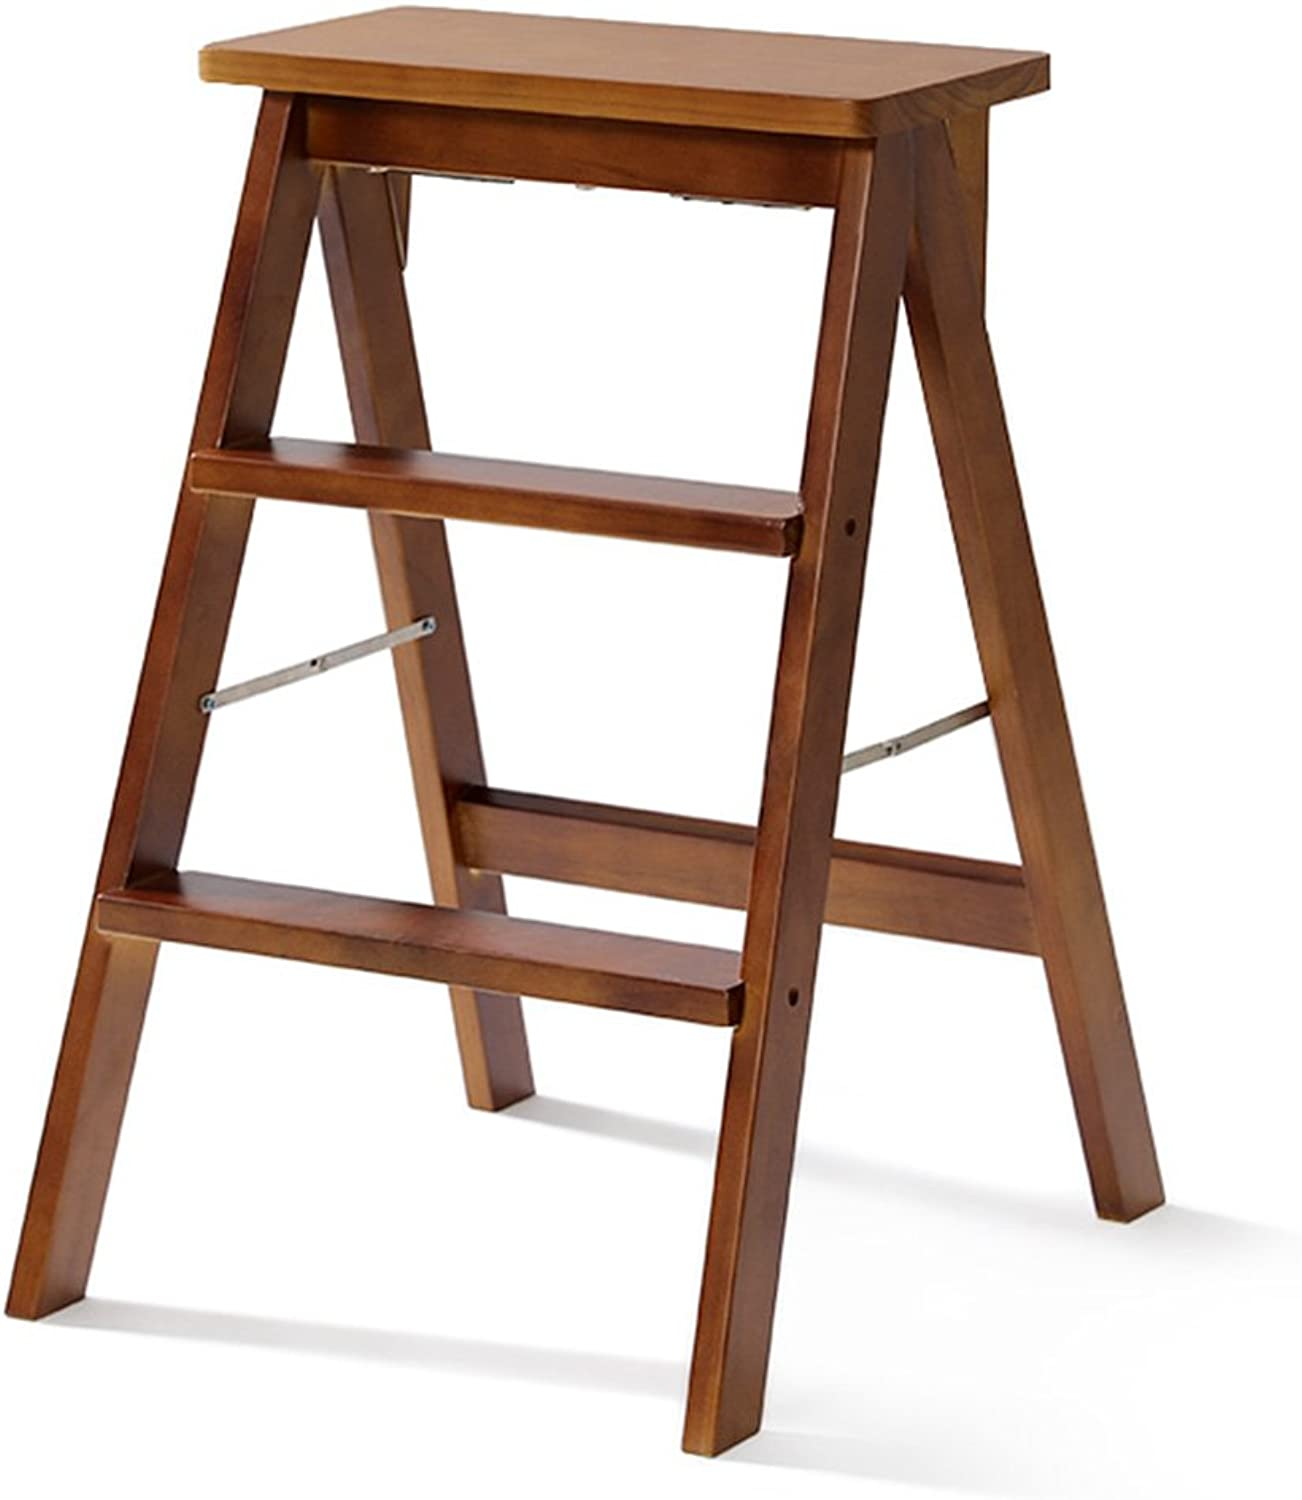 BLRYP Non-slip step stool Household Solid Wood Step Stool 3 Steps Ladder Stool,Modern Portable Folding Chair Stool With Tread Safety Non-Slip Multi-function Kitchen High Stool Bench,402064cm Slip re